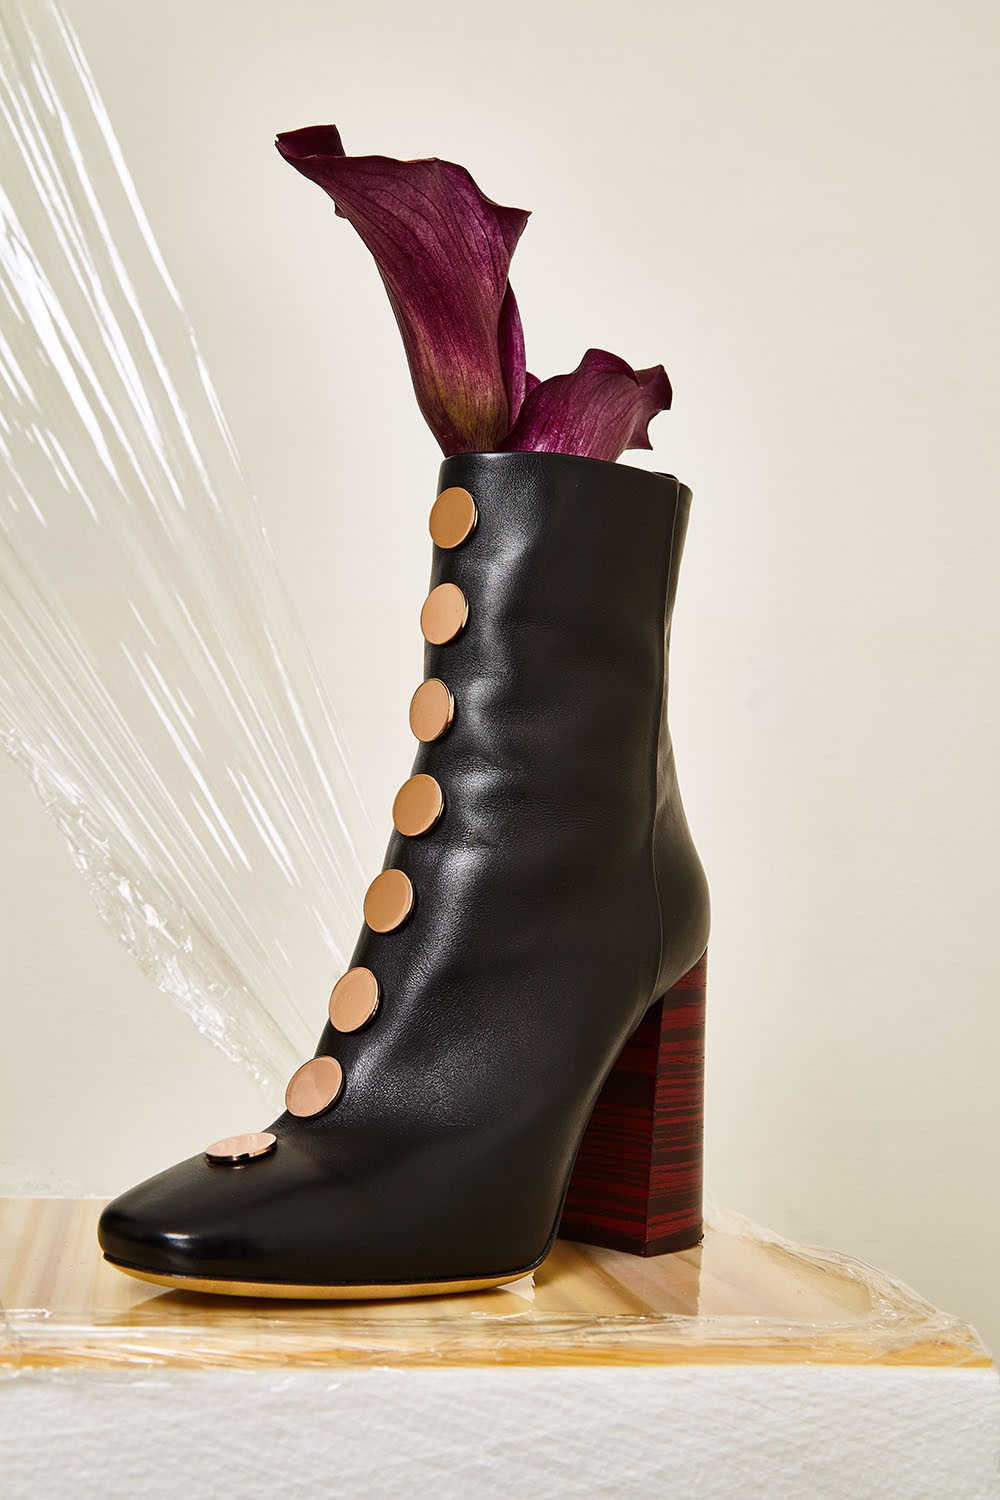 Ellery Esmond ankle boot with disc studs $1,240